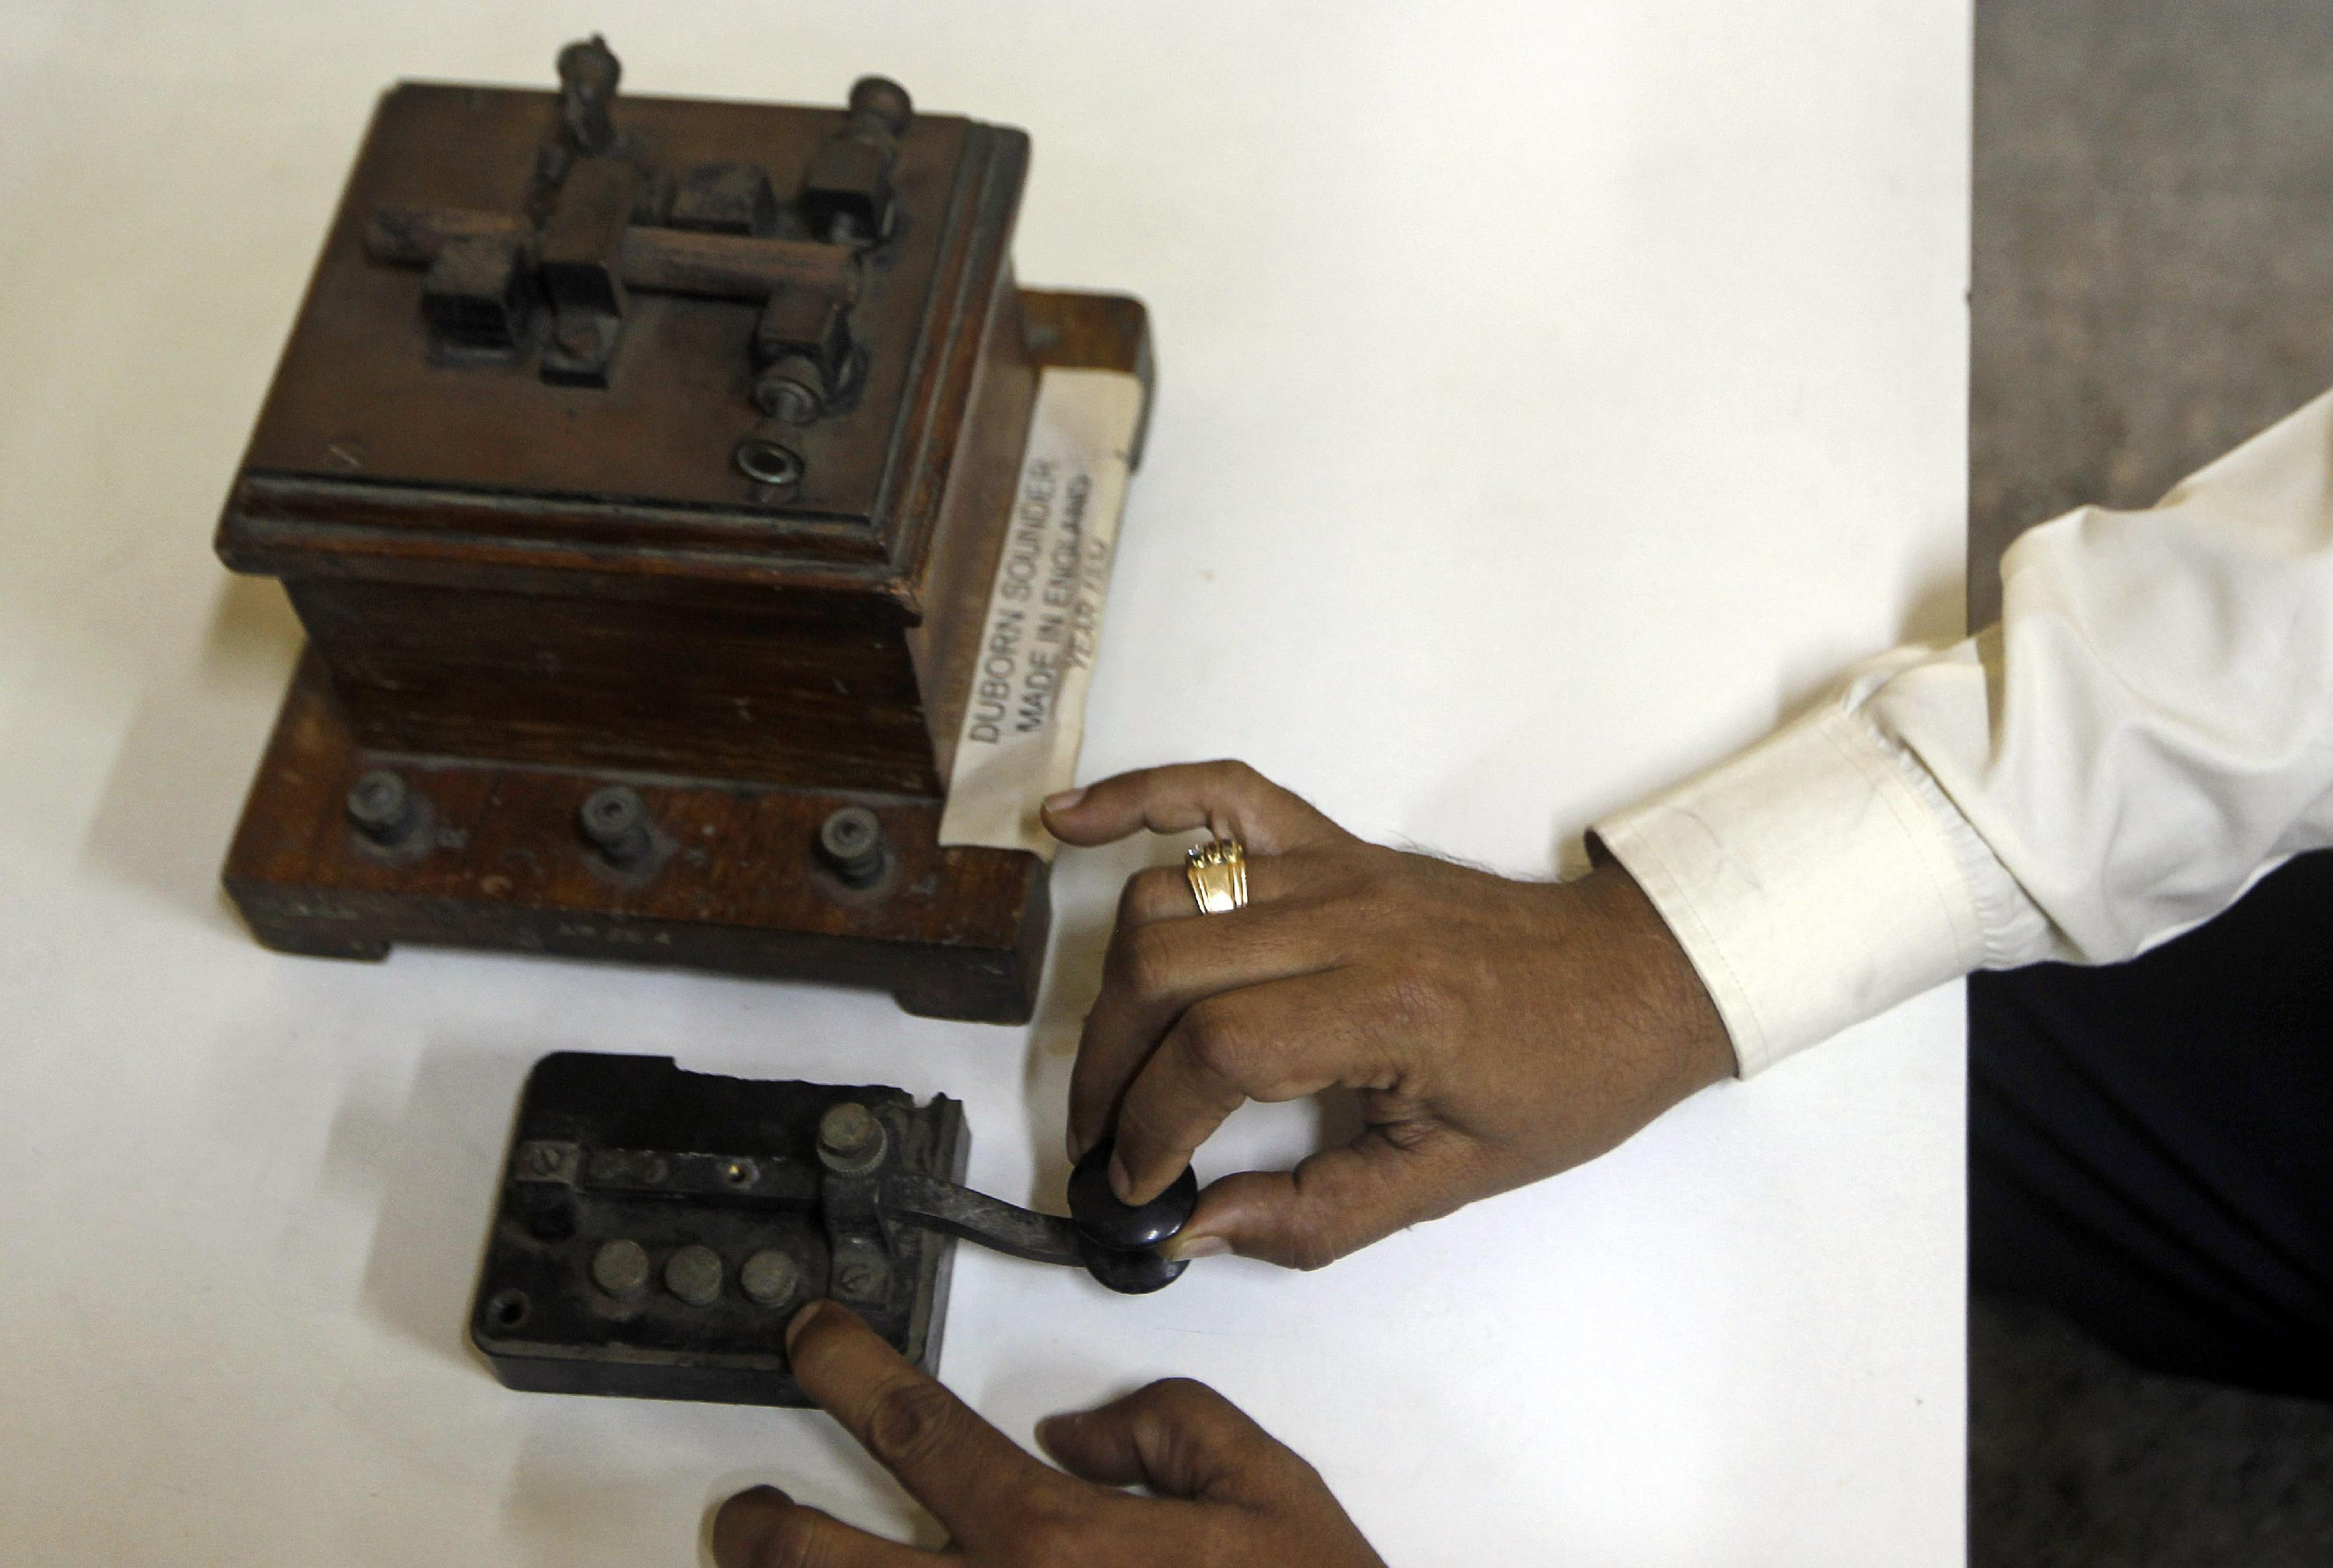 In this Friday, June 14, 2013 photo, a staff member of the central telegraph office shows an old telegraphic equipment which is no longer in use, in Mumbai, India. Just three decades ago - before reliable landlines were laid and well before the age of cheap cellphones arrived - the telegram was king across the vast Indian nation. On Monday, July 15, 2013, the state-run telecommunications company will send its final telegram, closing down a service that fast became a relic in an age of email, reliable land lines and ubiquitous cellphones. (AP Photo/Rajanish Kakade)